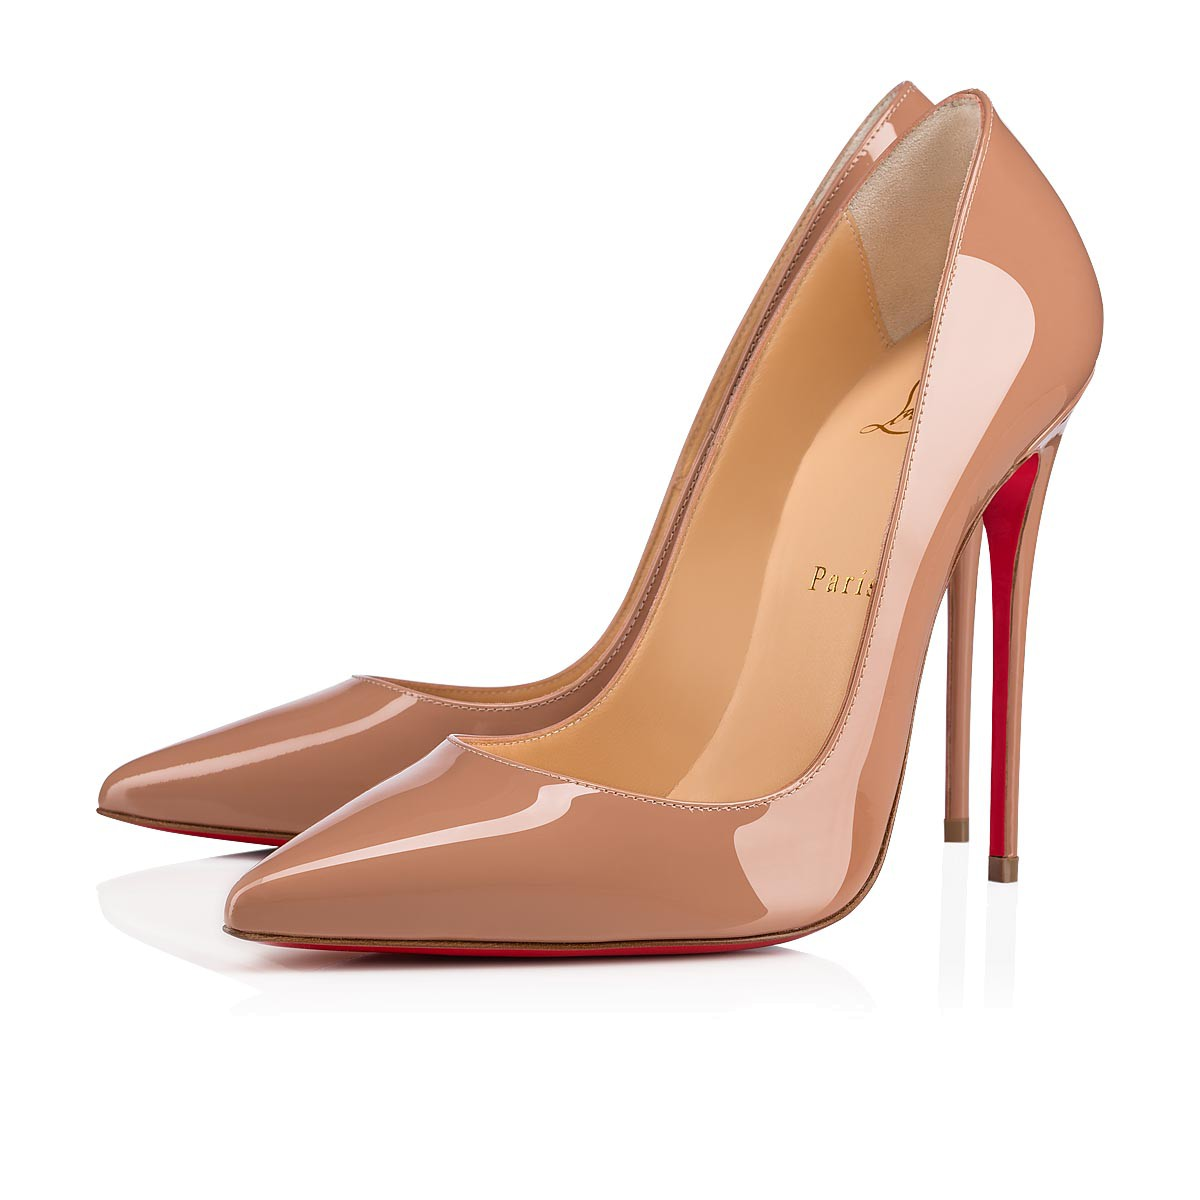 2f7ad0e637 So Kate 120 Nude Patent Leather - Women Shoes - Christian Louboutin